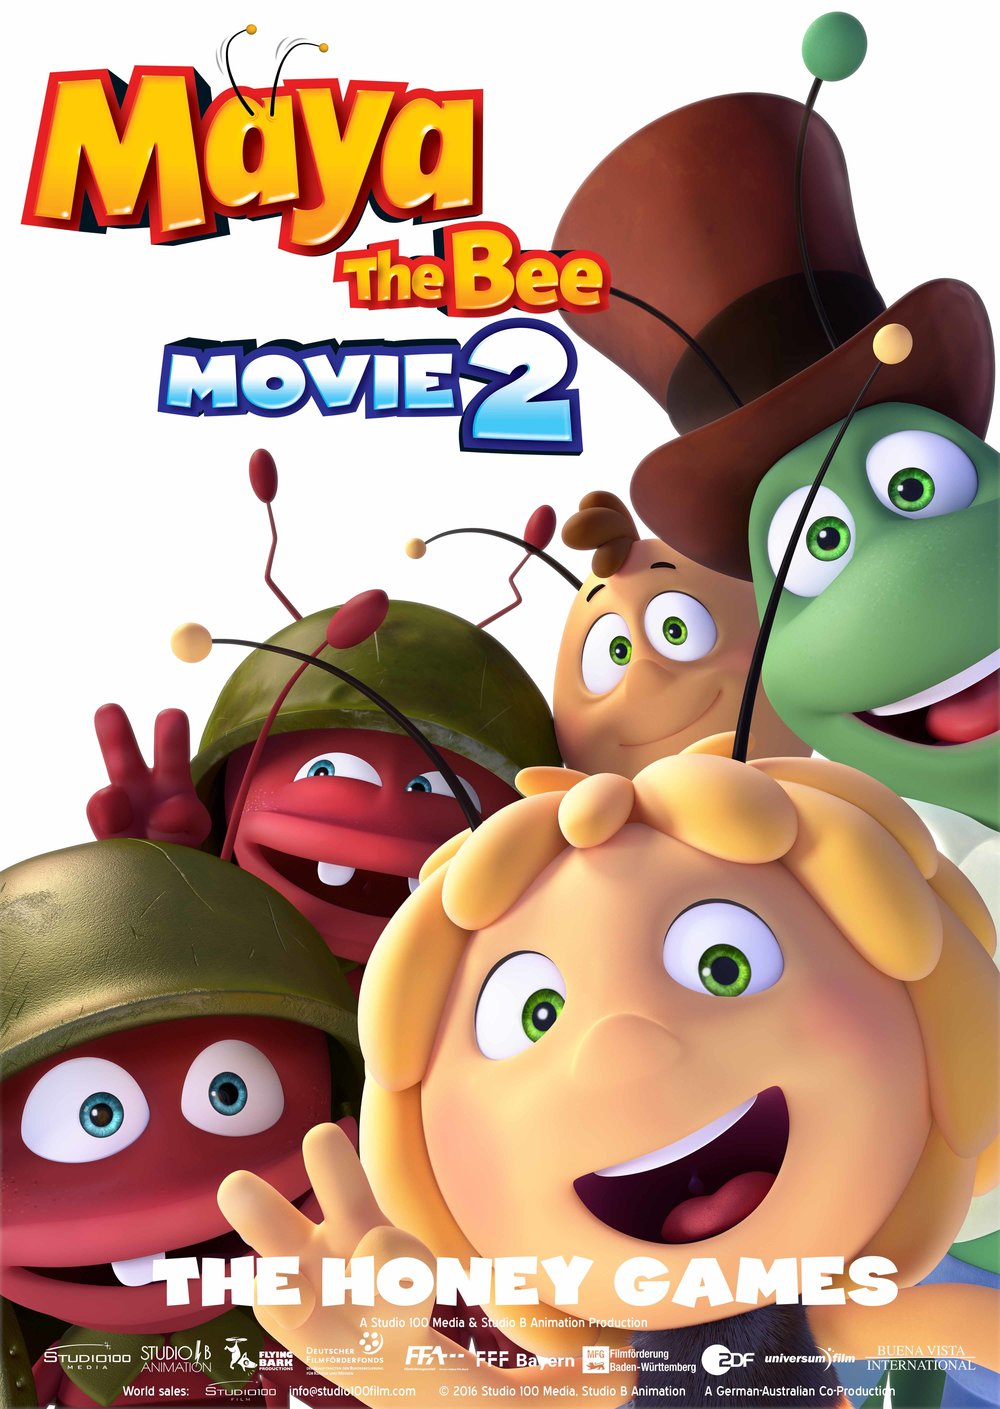 MAYA THE BEE: MOVIE 2